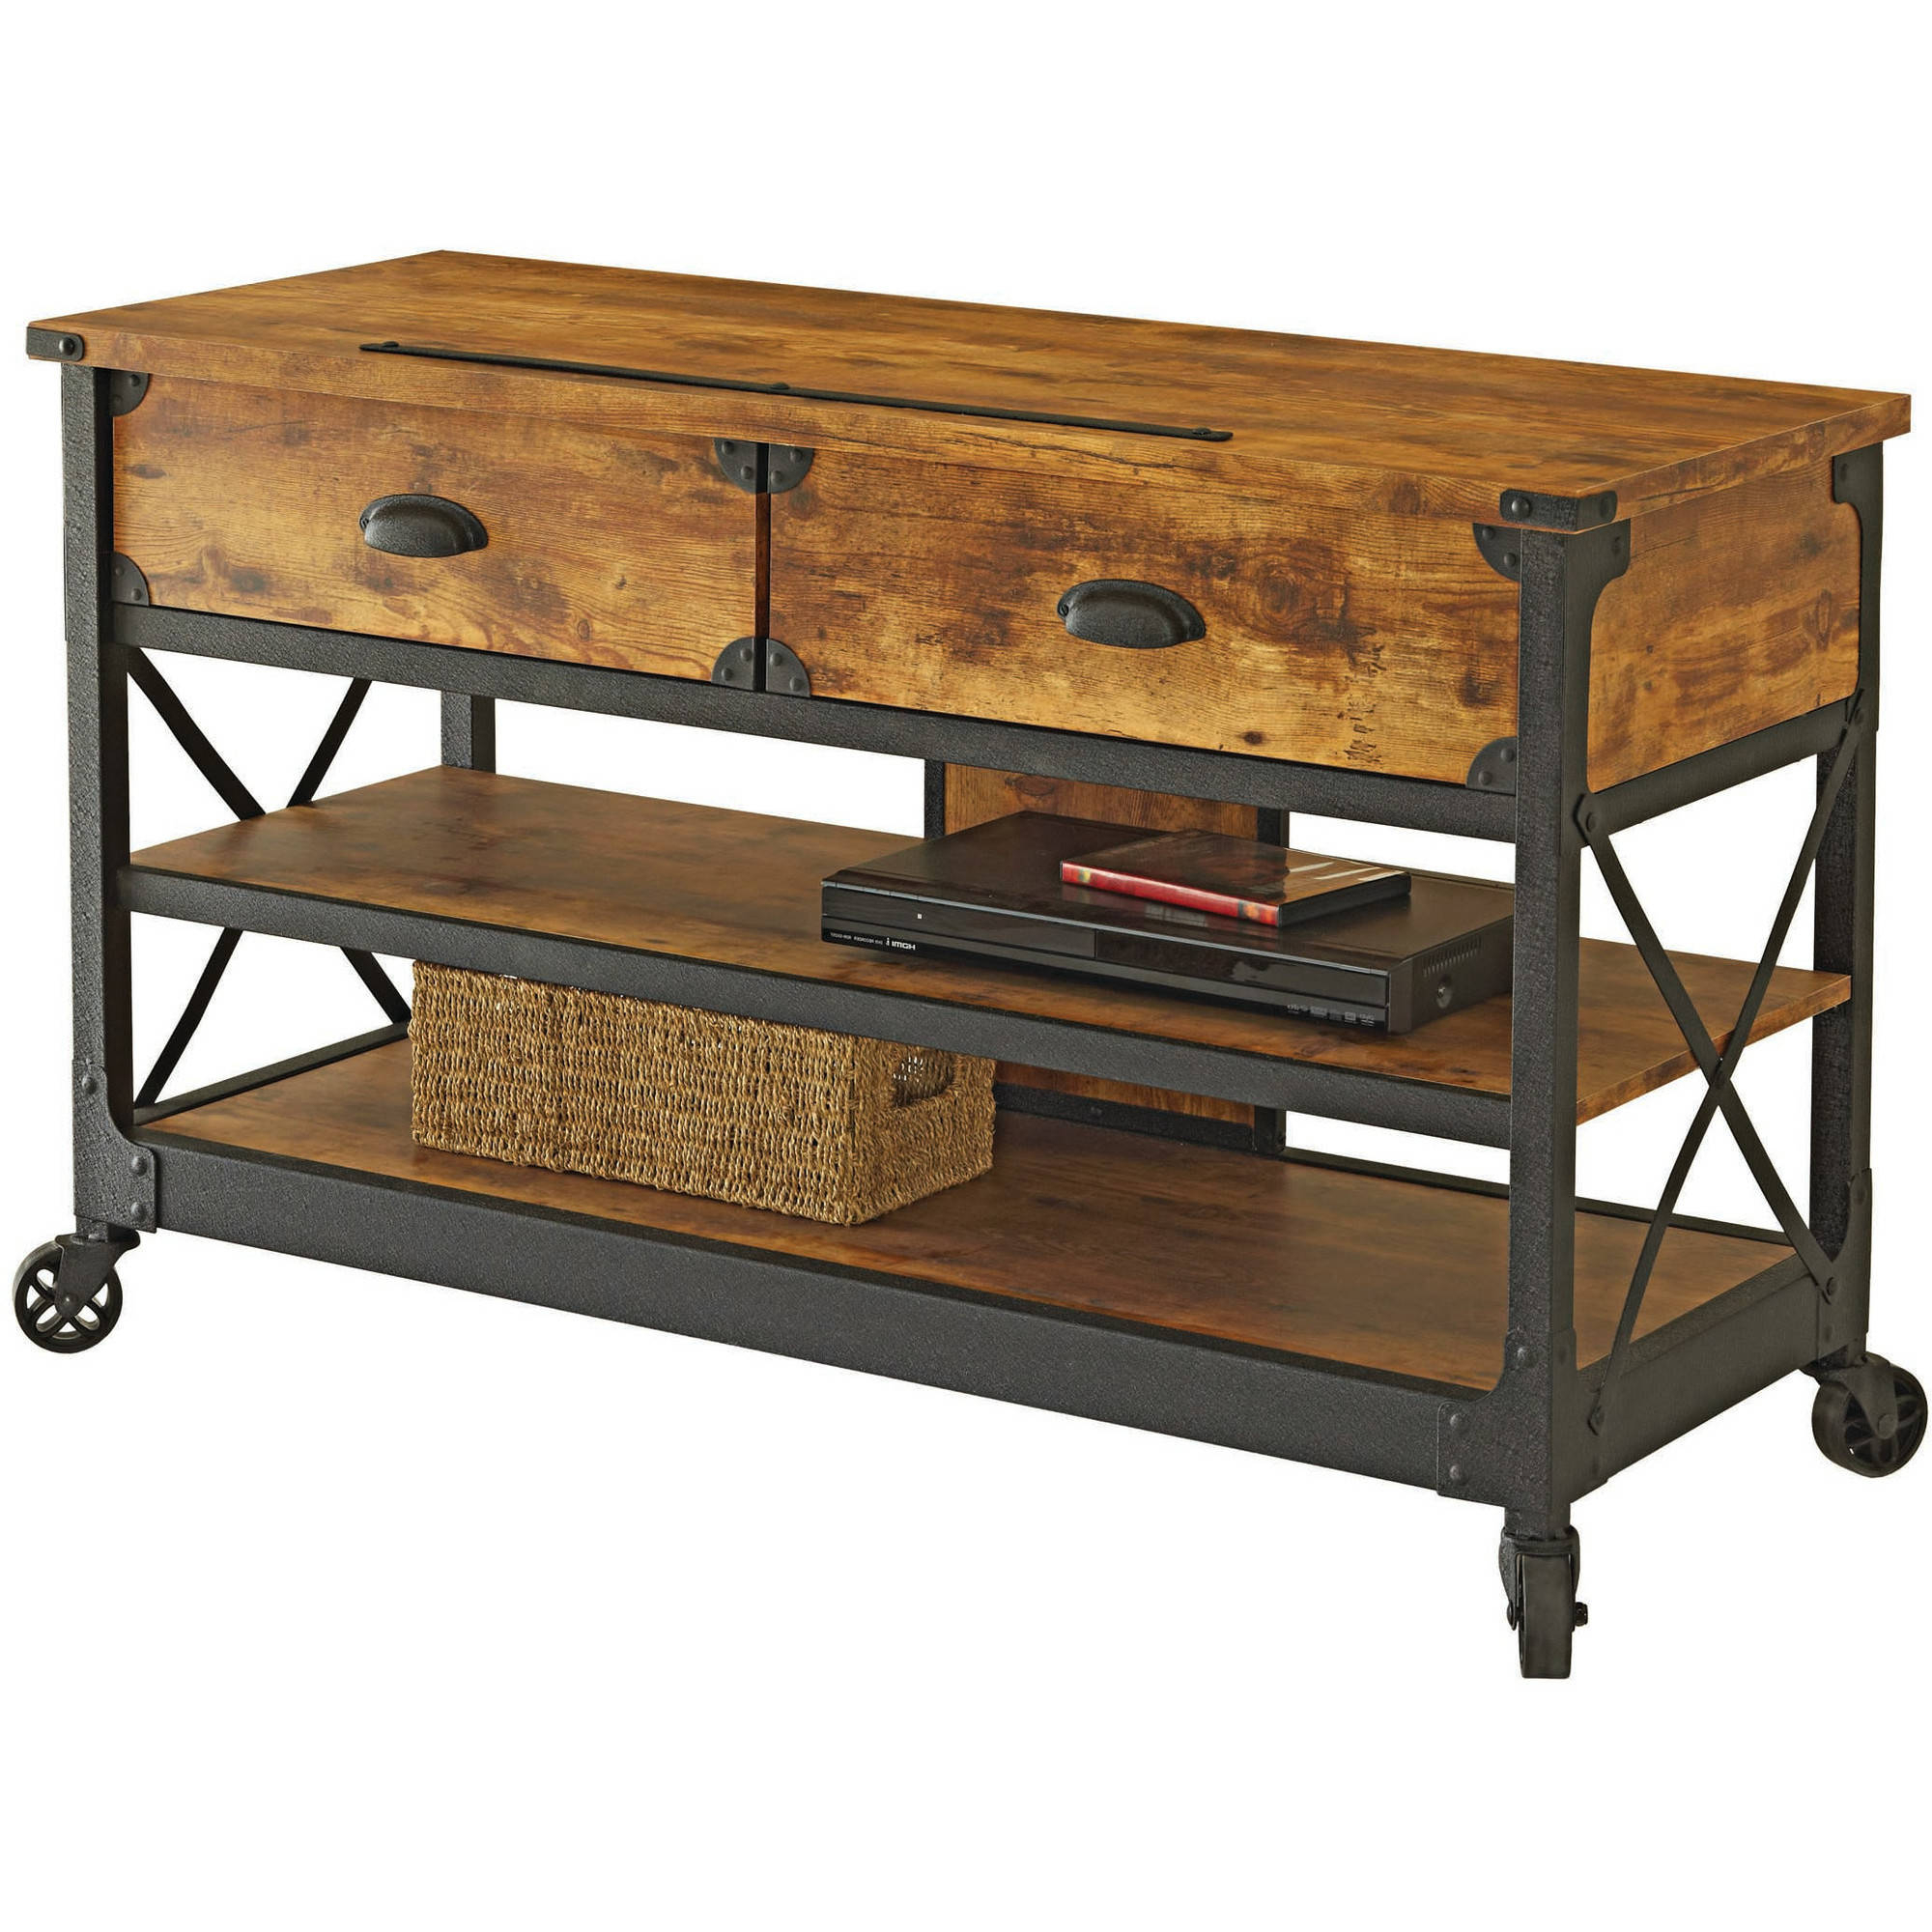 Wooden Tv Stand With Wheels Intended For Favorite Inspiring New Rustic Tv Console Table Stand Wood Wheels Office (View 17 of 20)